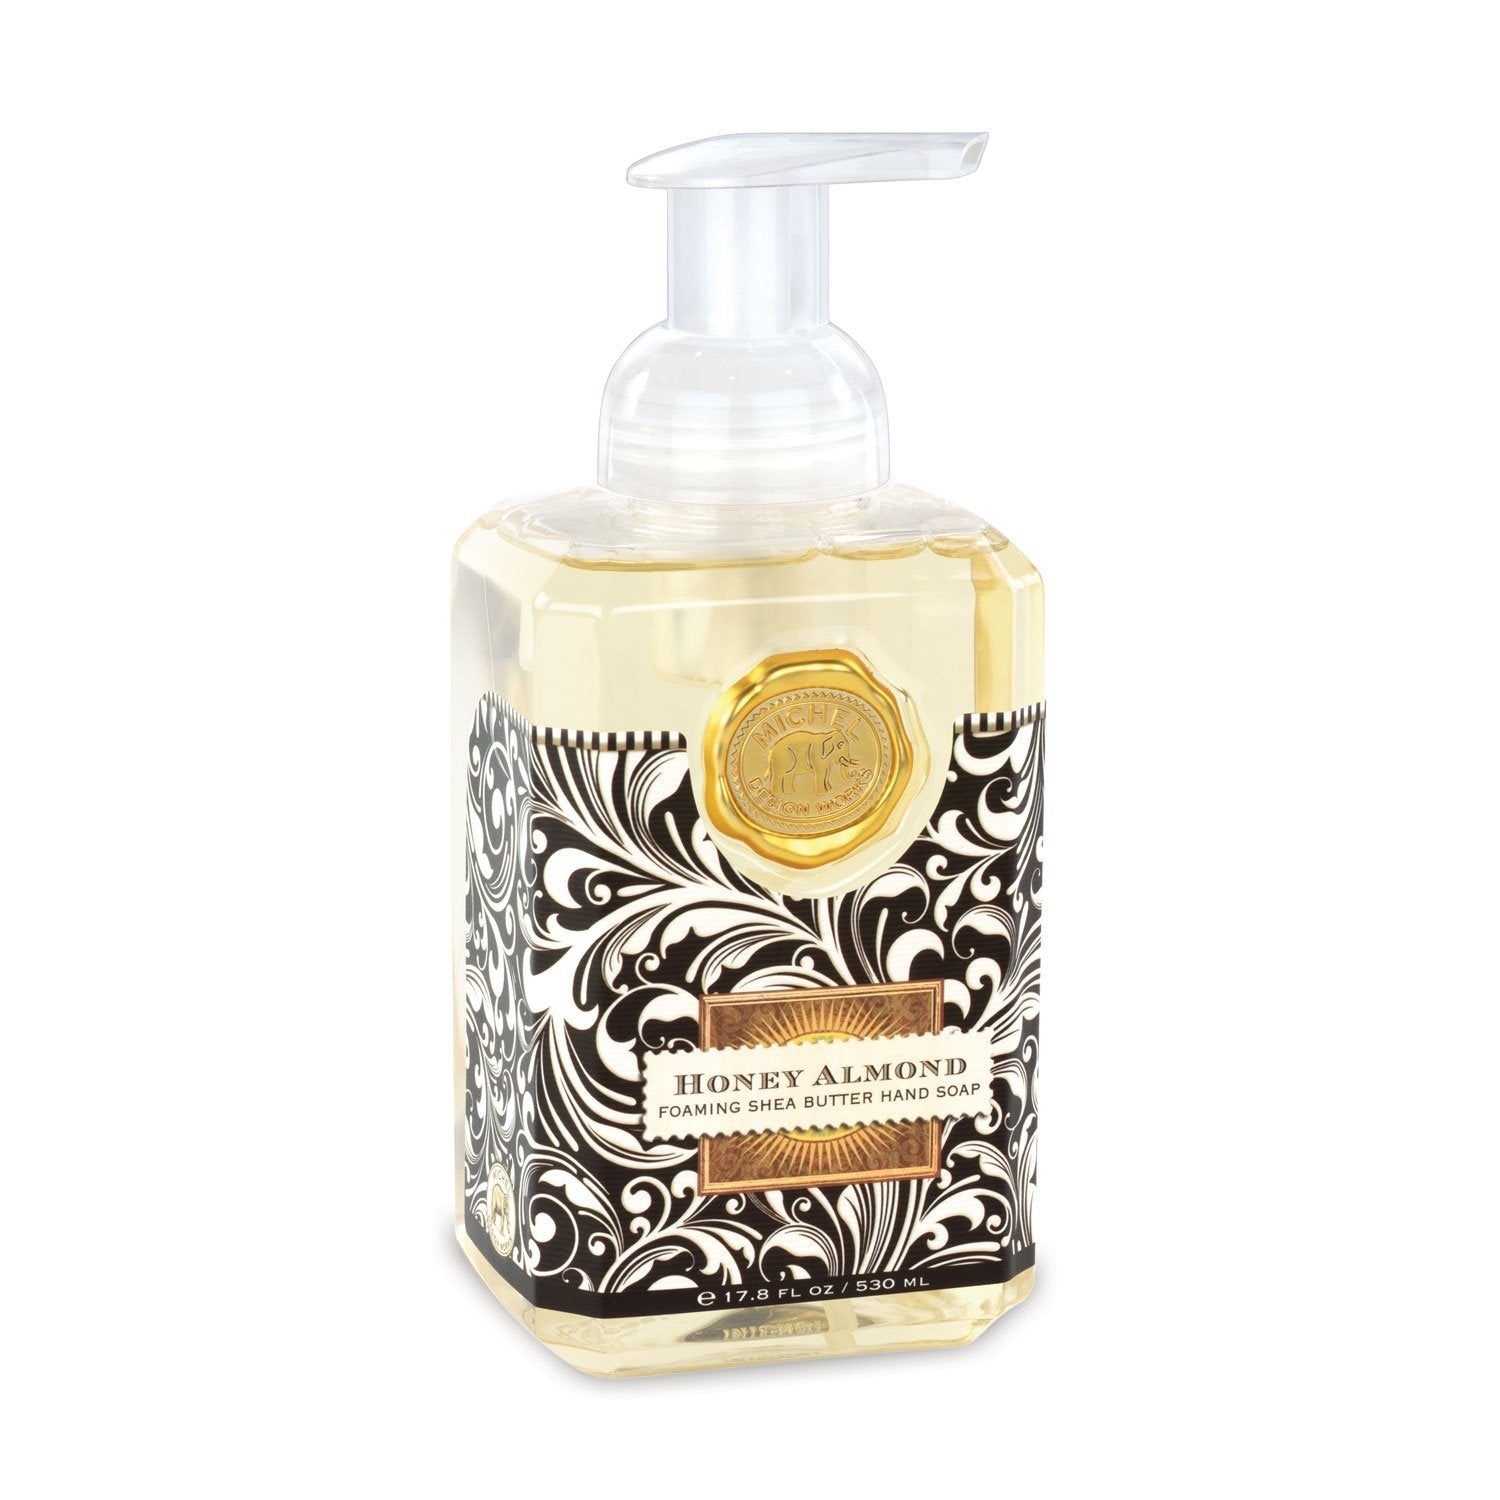 HONEY ALMOND FOAMING HAND SOAP FOA182 - Molly's! A Chic and Unique Boutique